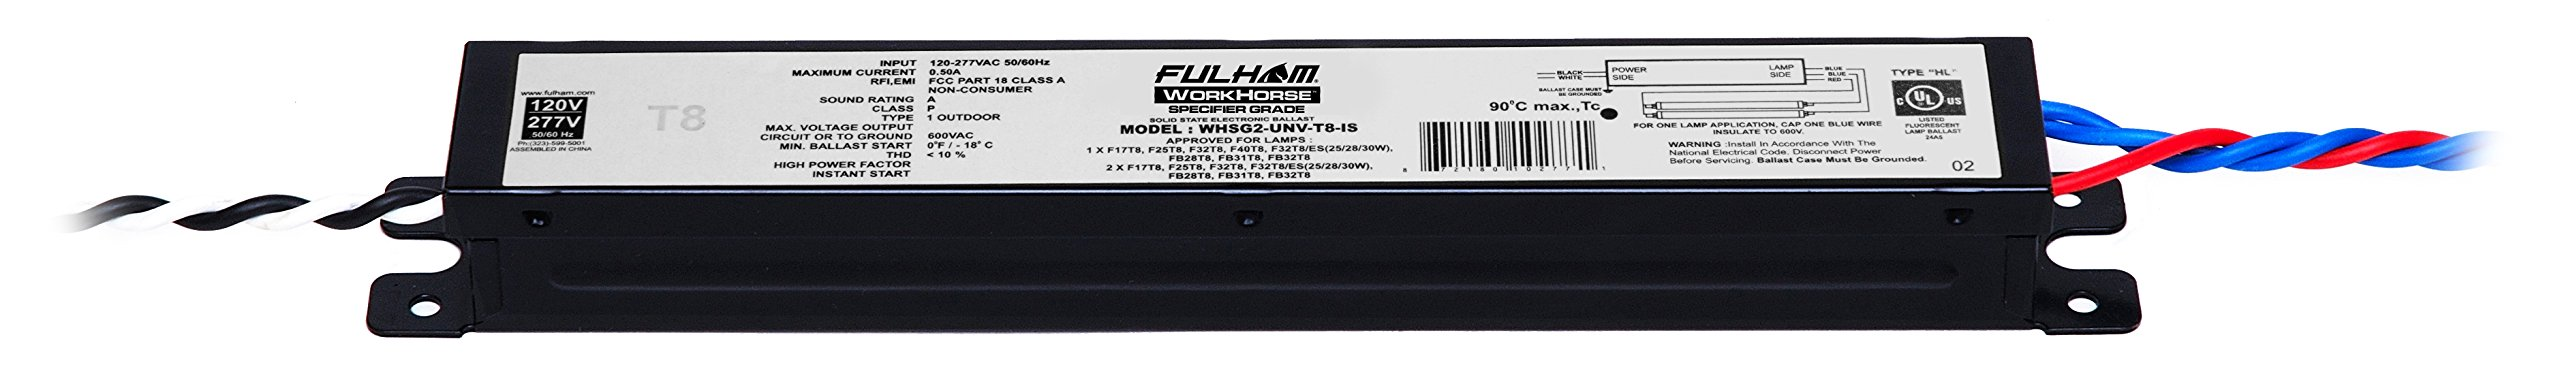 Fulham Specification Grade Linear T8 Ballast, WHSG2-UNV-T8-IS